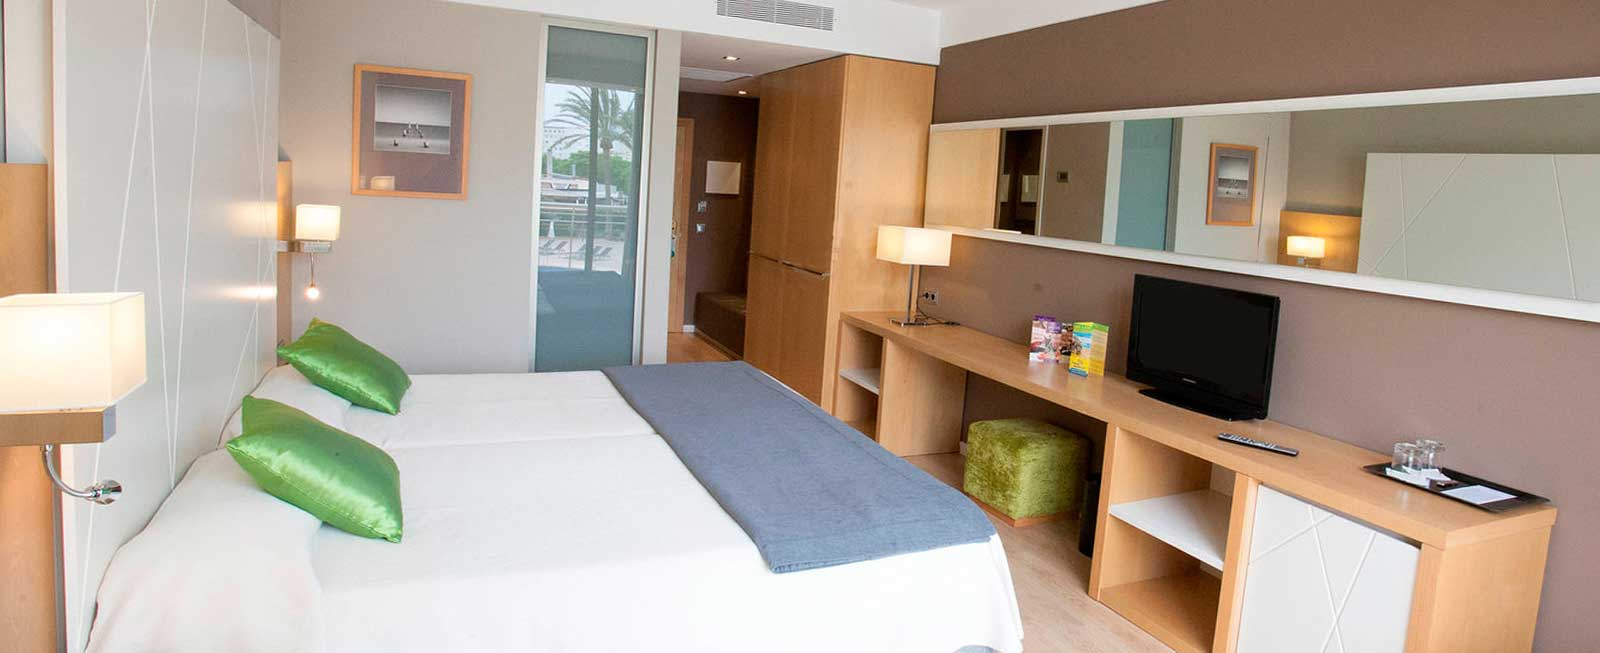 doble swim up room protur sa coma playa hotel spa